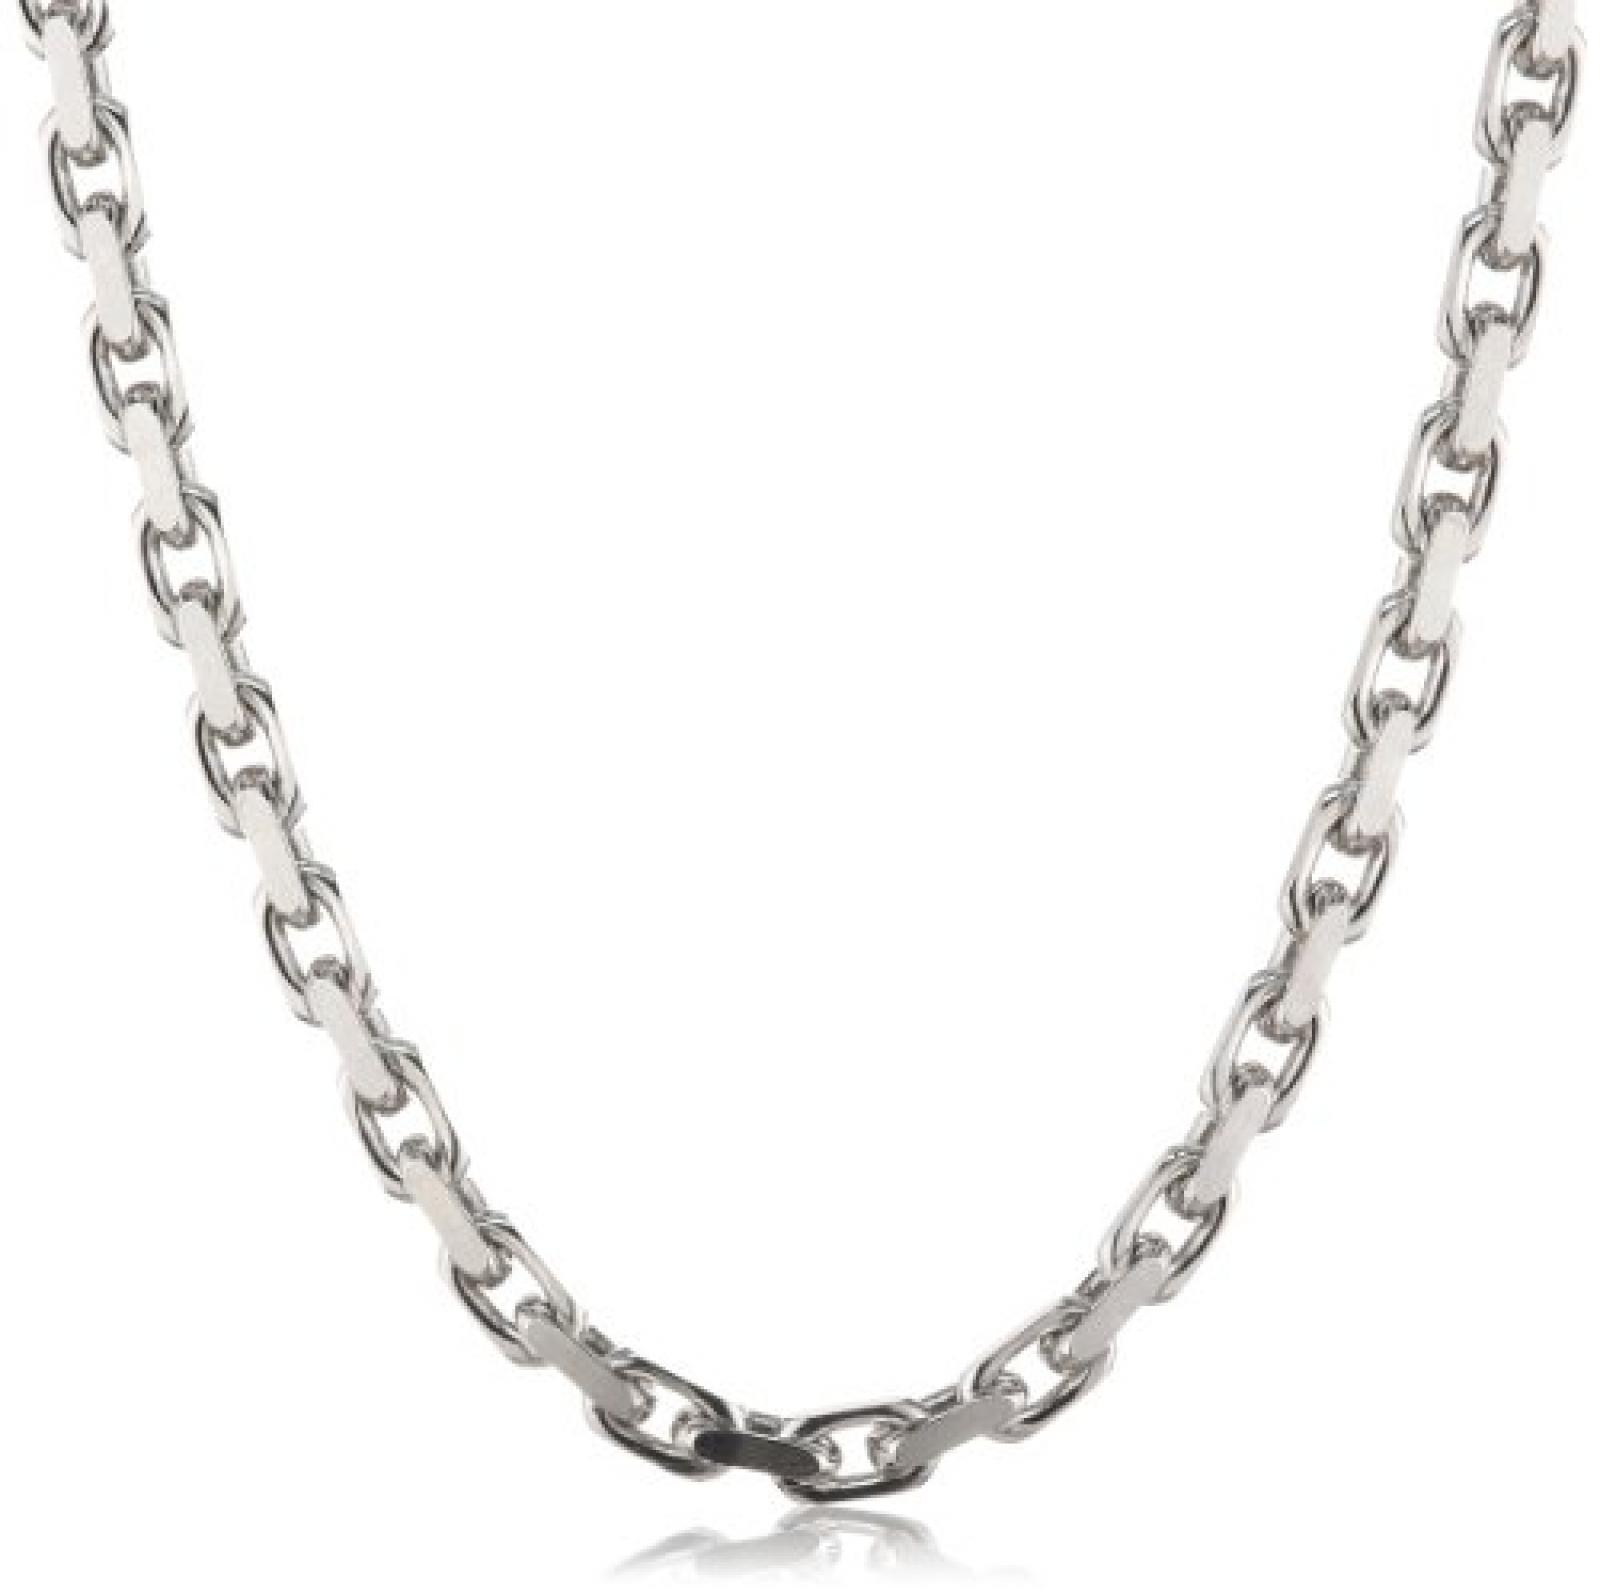 Amor Jewelry Unisex-Halskette 925 Sterling Silber 90117